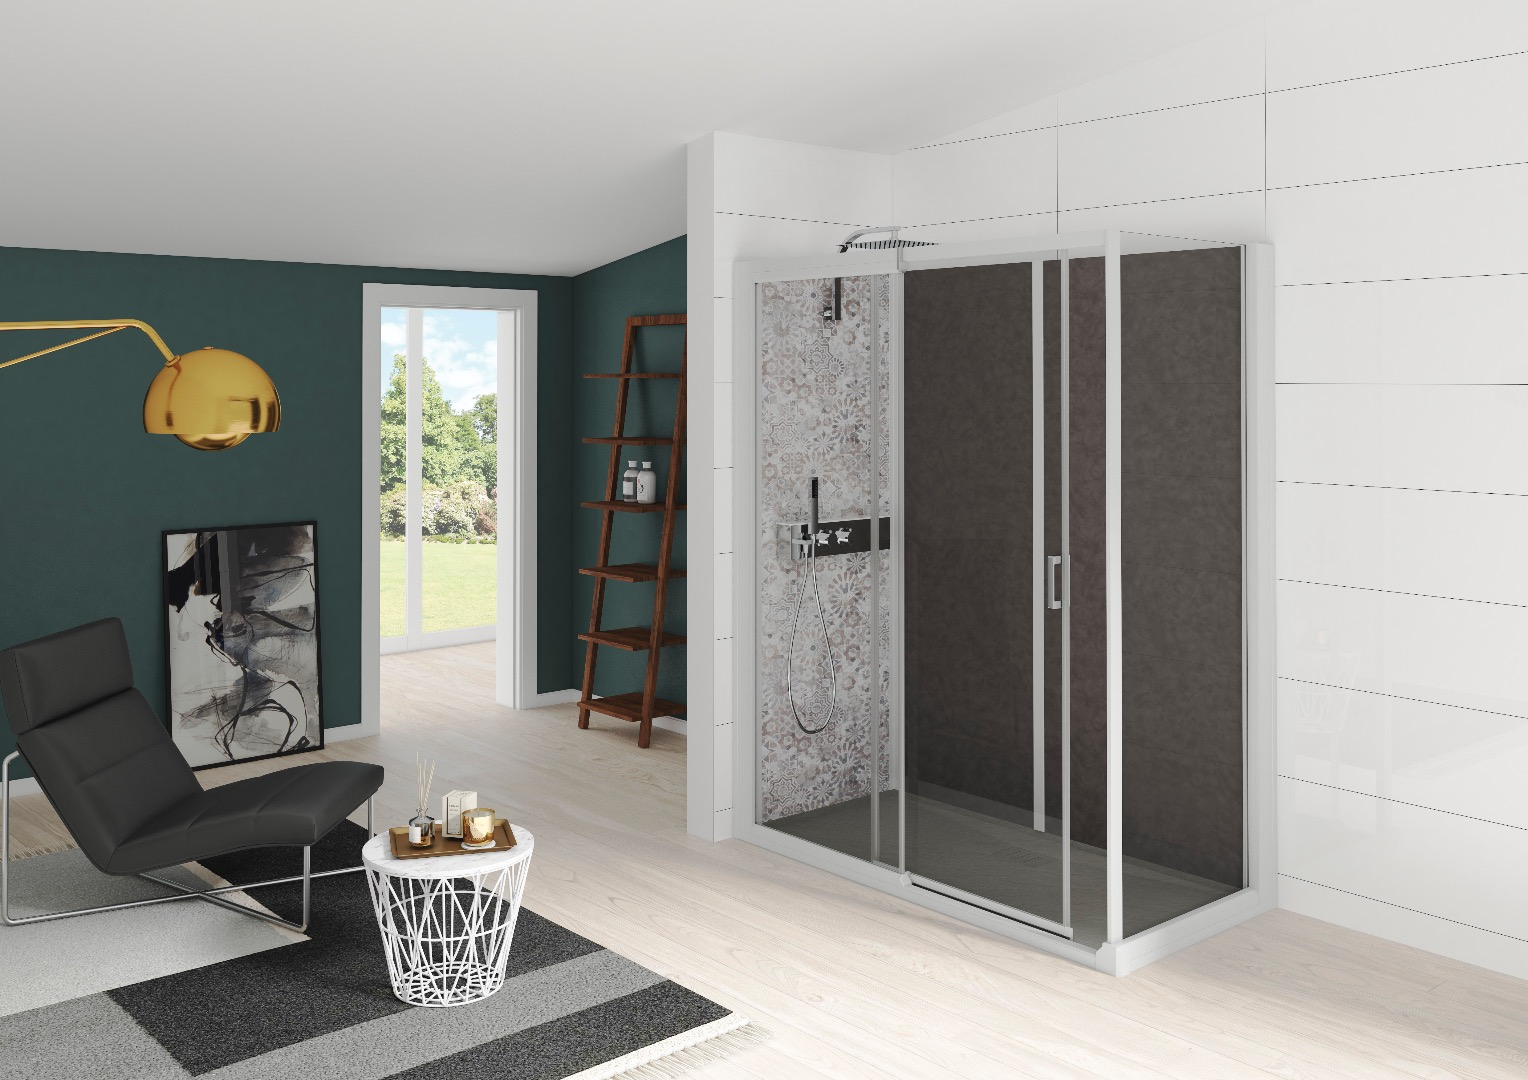 Douche contemporaine finition verre